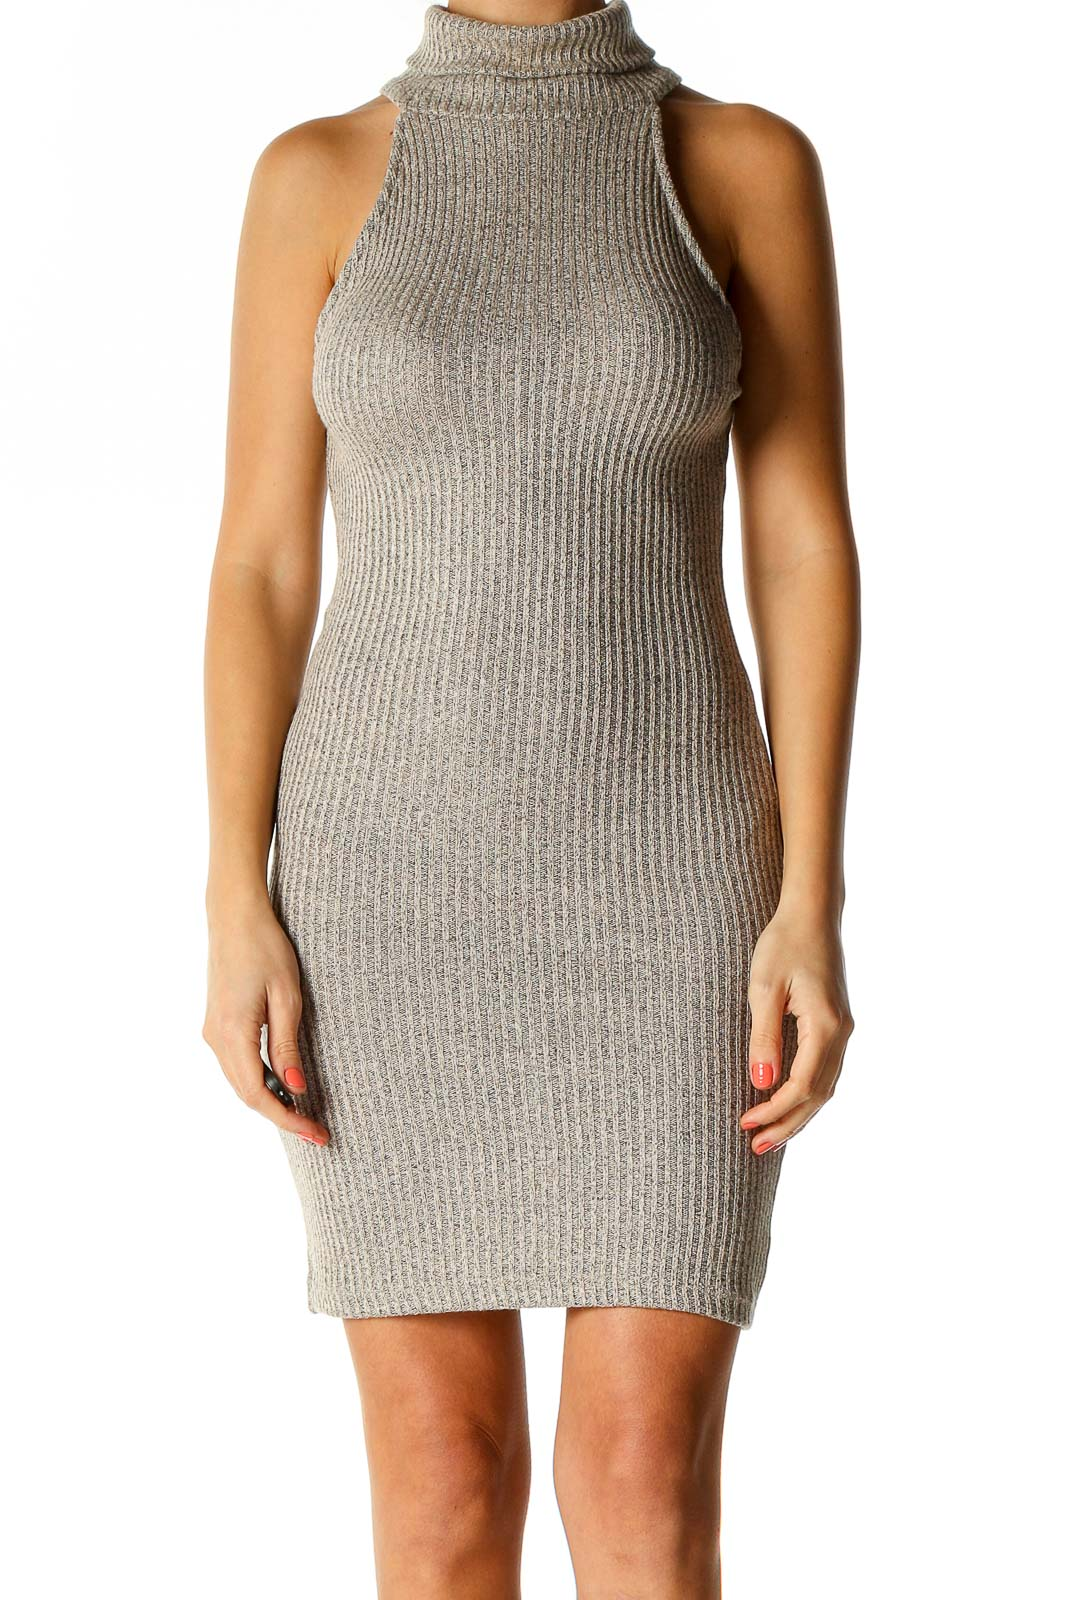 Gray Textured Classic Sheath Dress Front